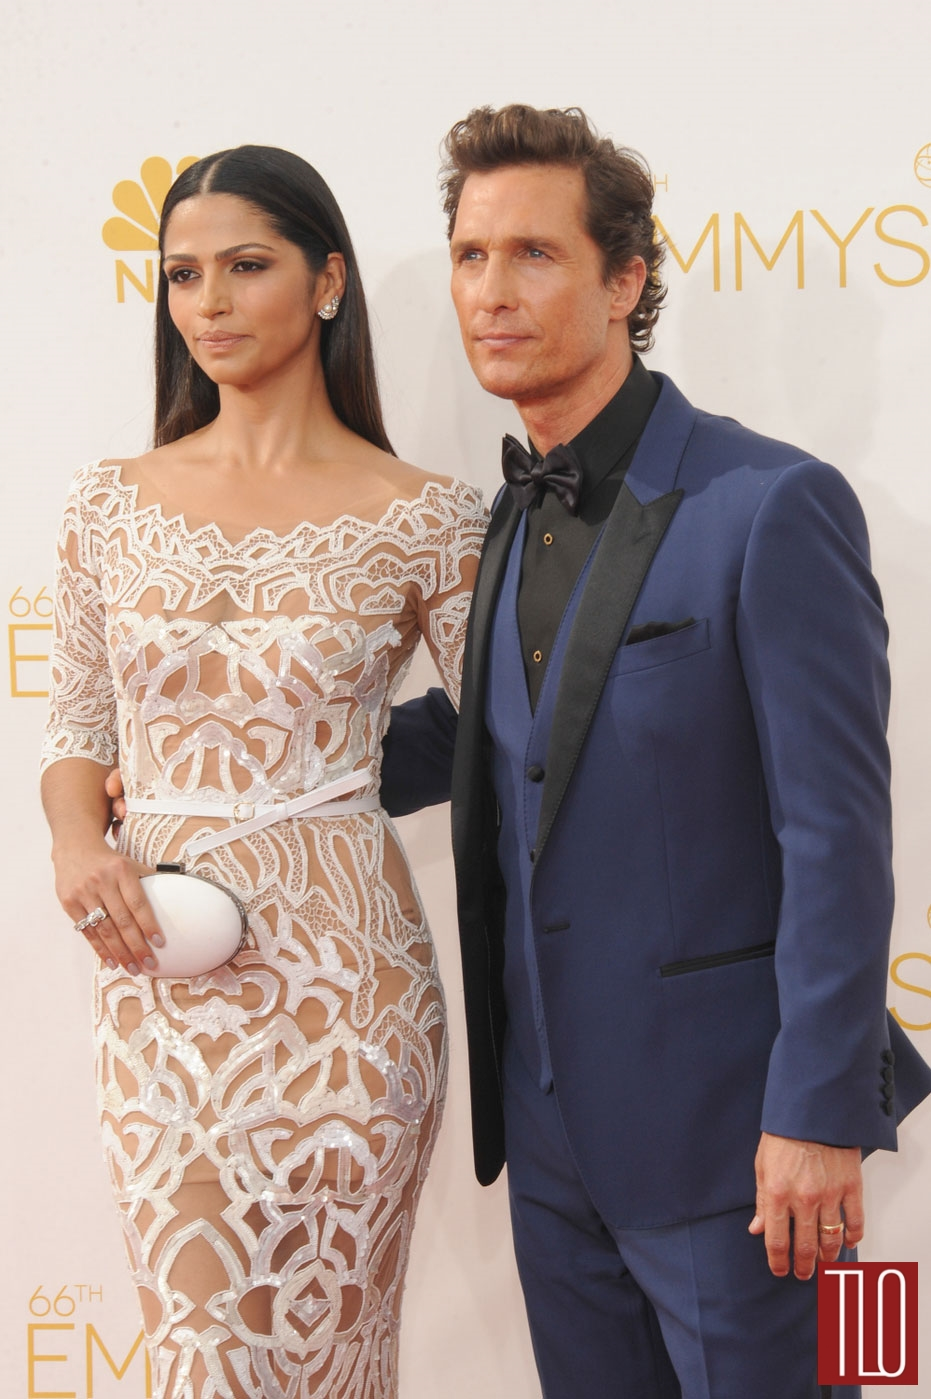 Matthew-McConaughey-Camila-Alves-2014-Emmy-Awards-Dolce-Gabbana-Zuhair-Murad-Red-Carpet-Tom-LOrenzo-Site-TLO (1)